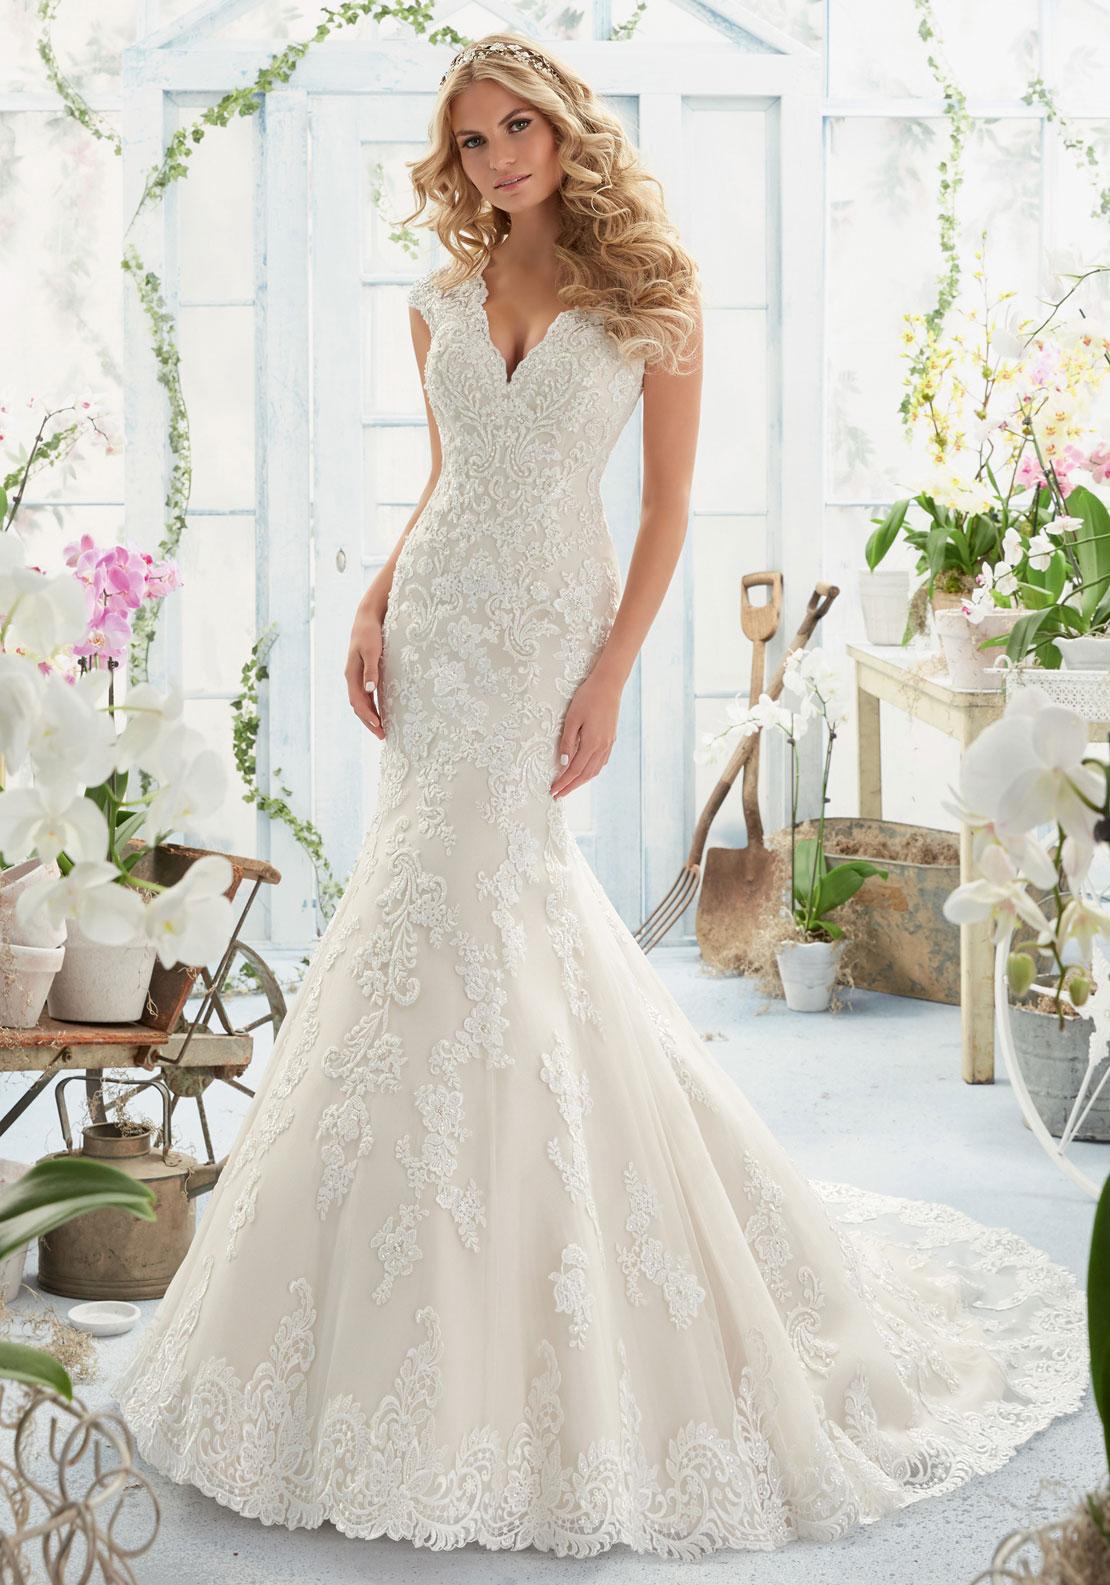 MORI LEE BRIDAL 16S LGD